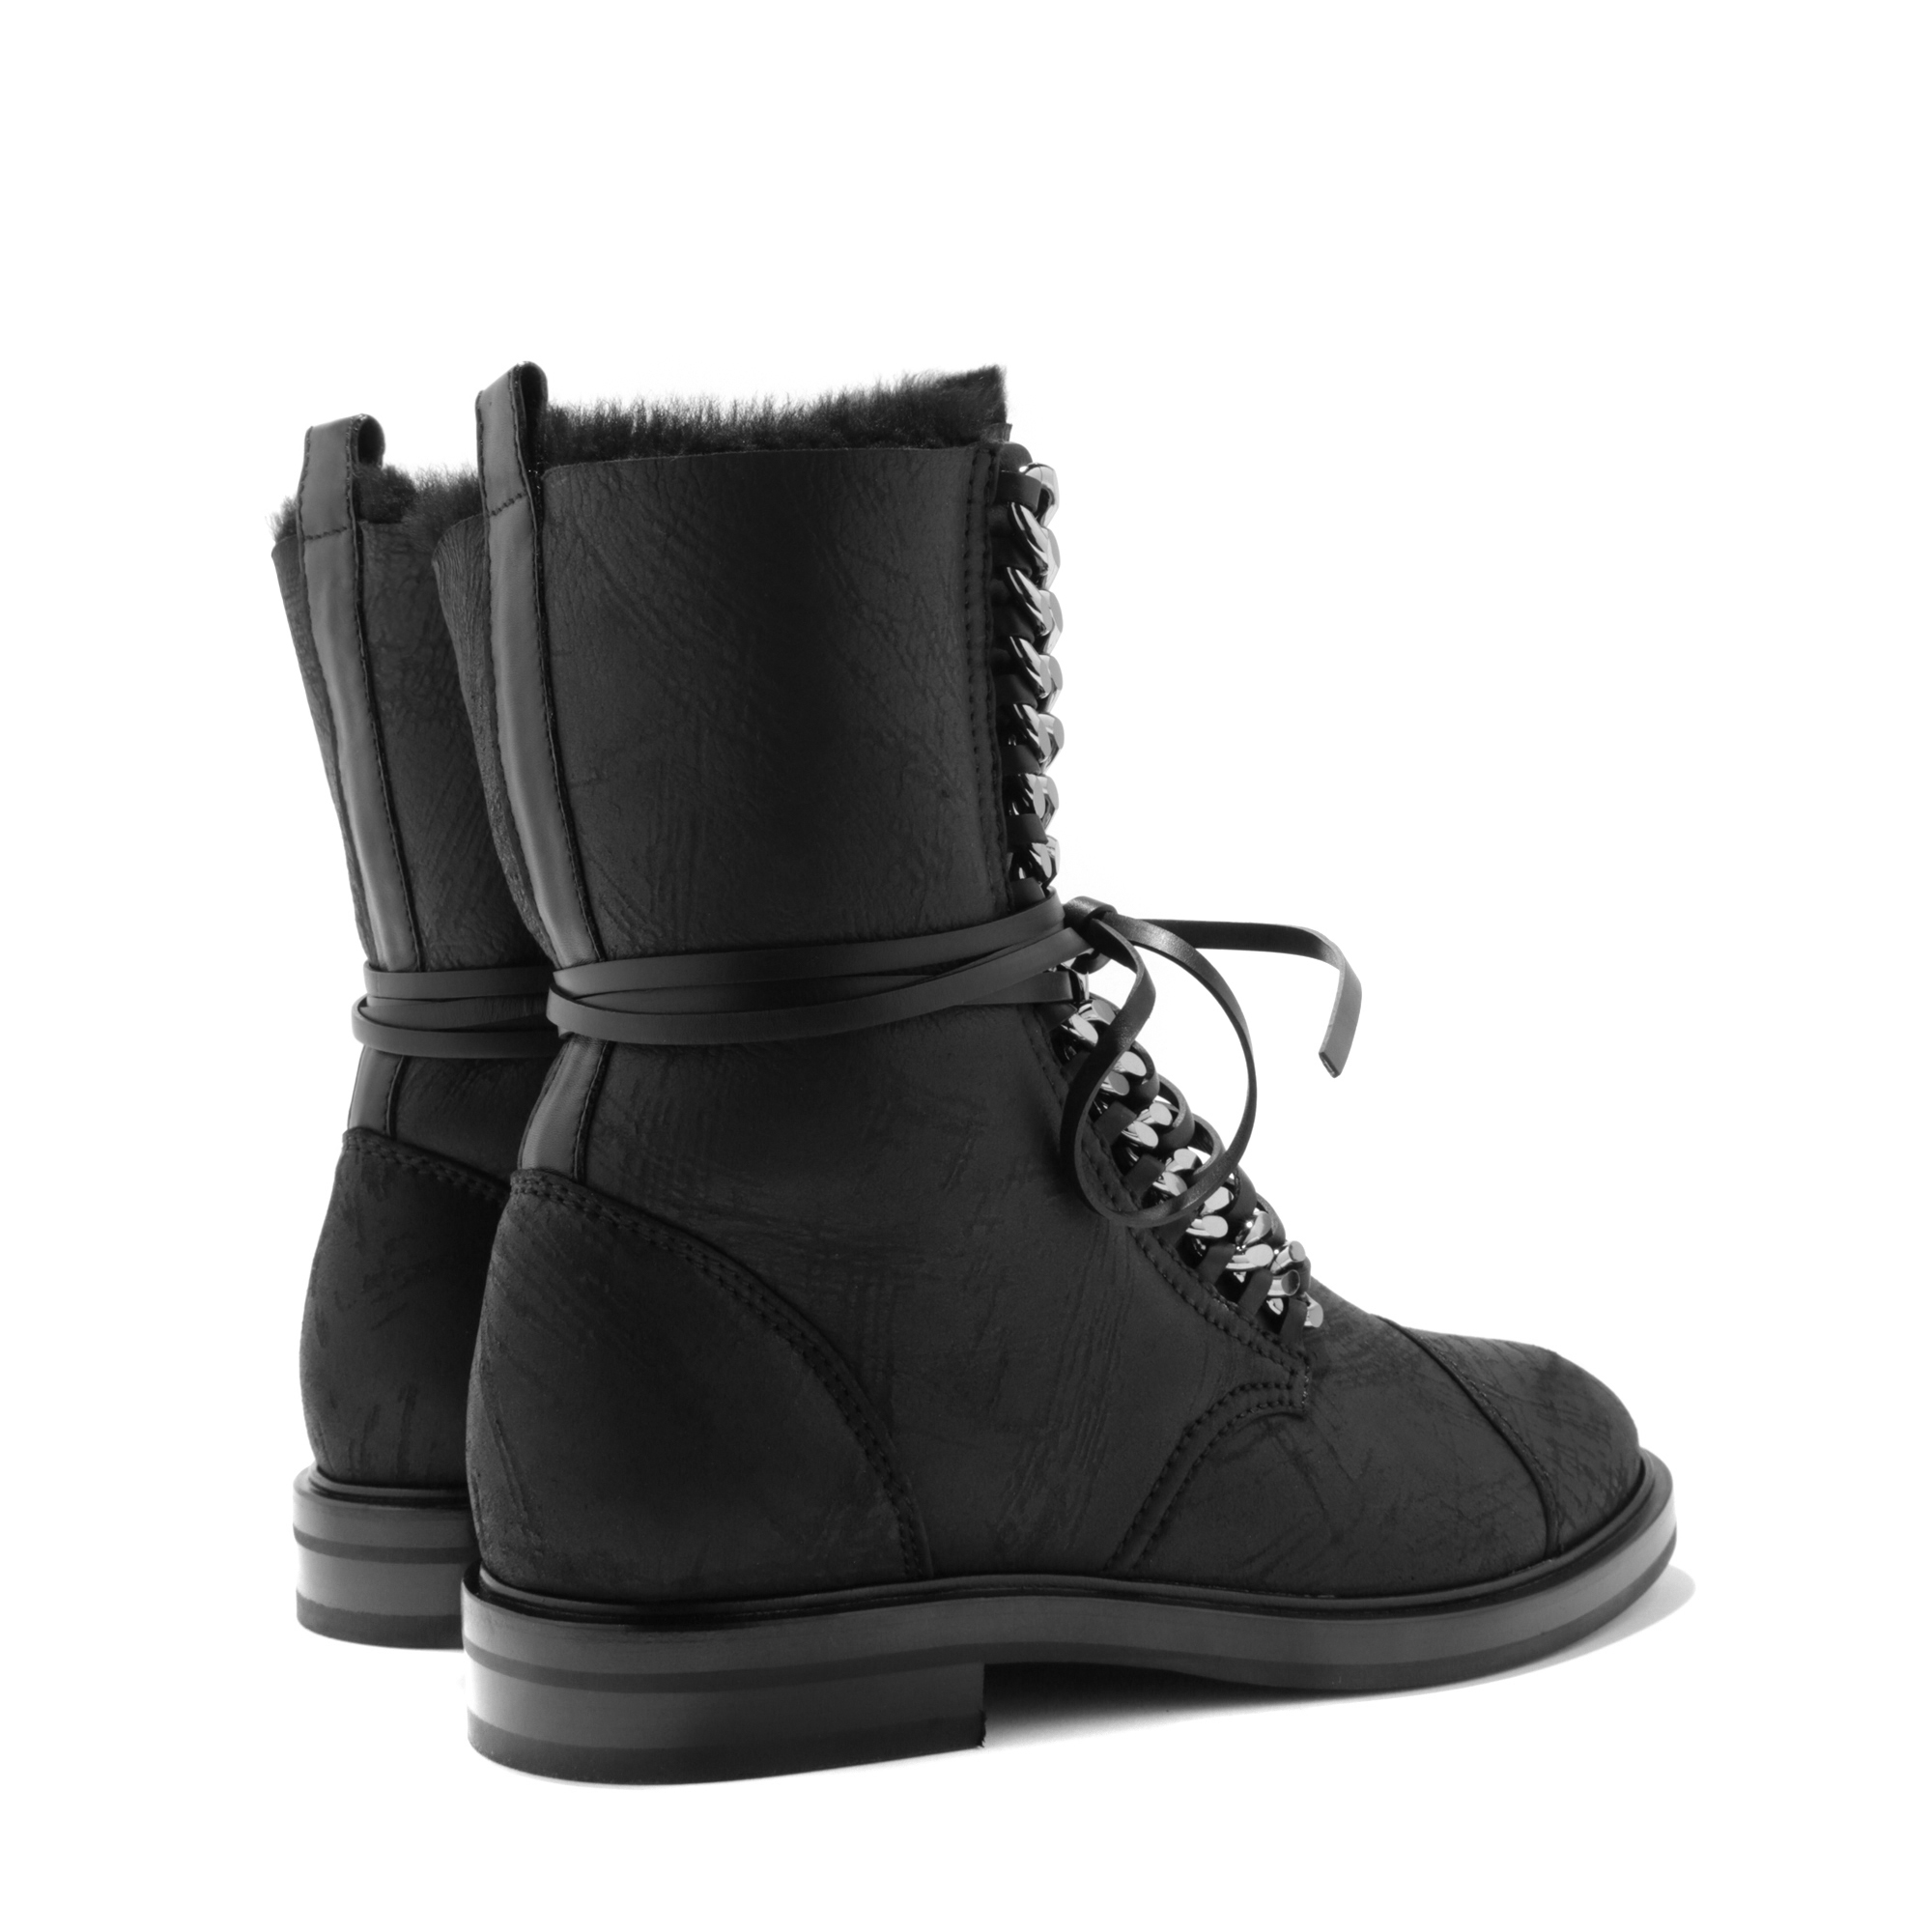 City Rock boots - Black Casadei 4AAVg